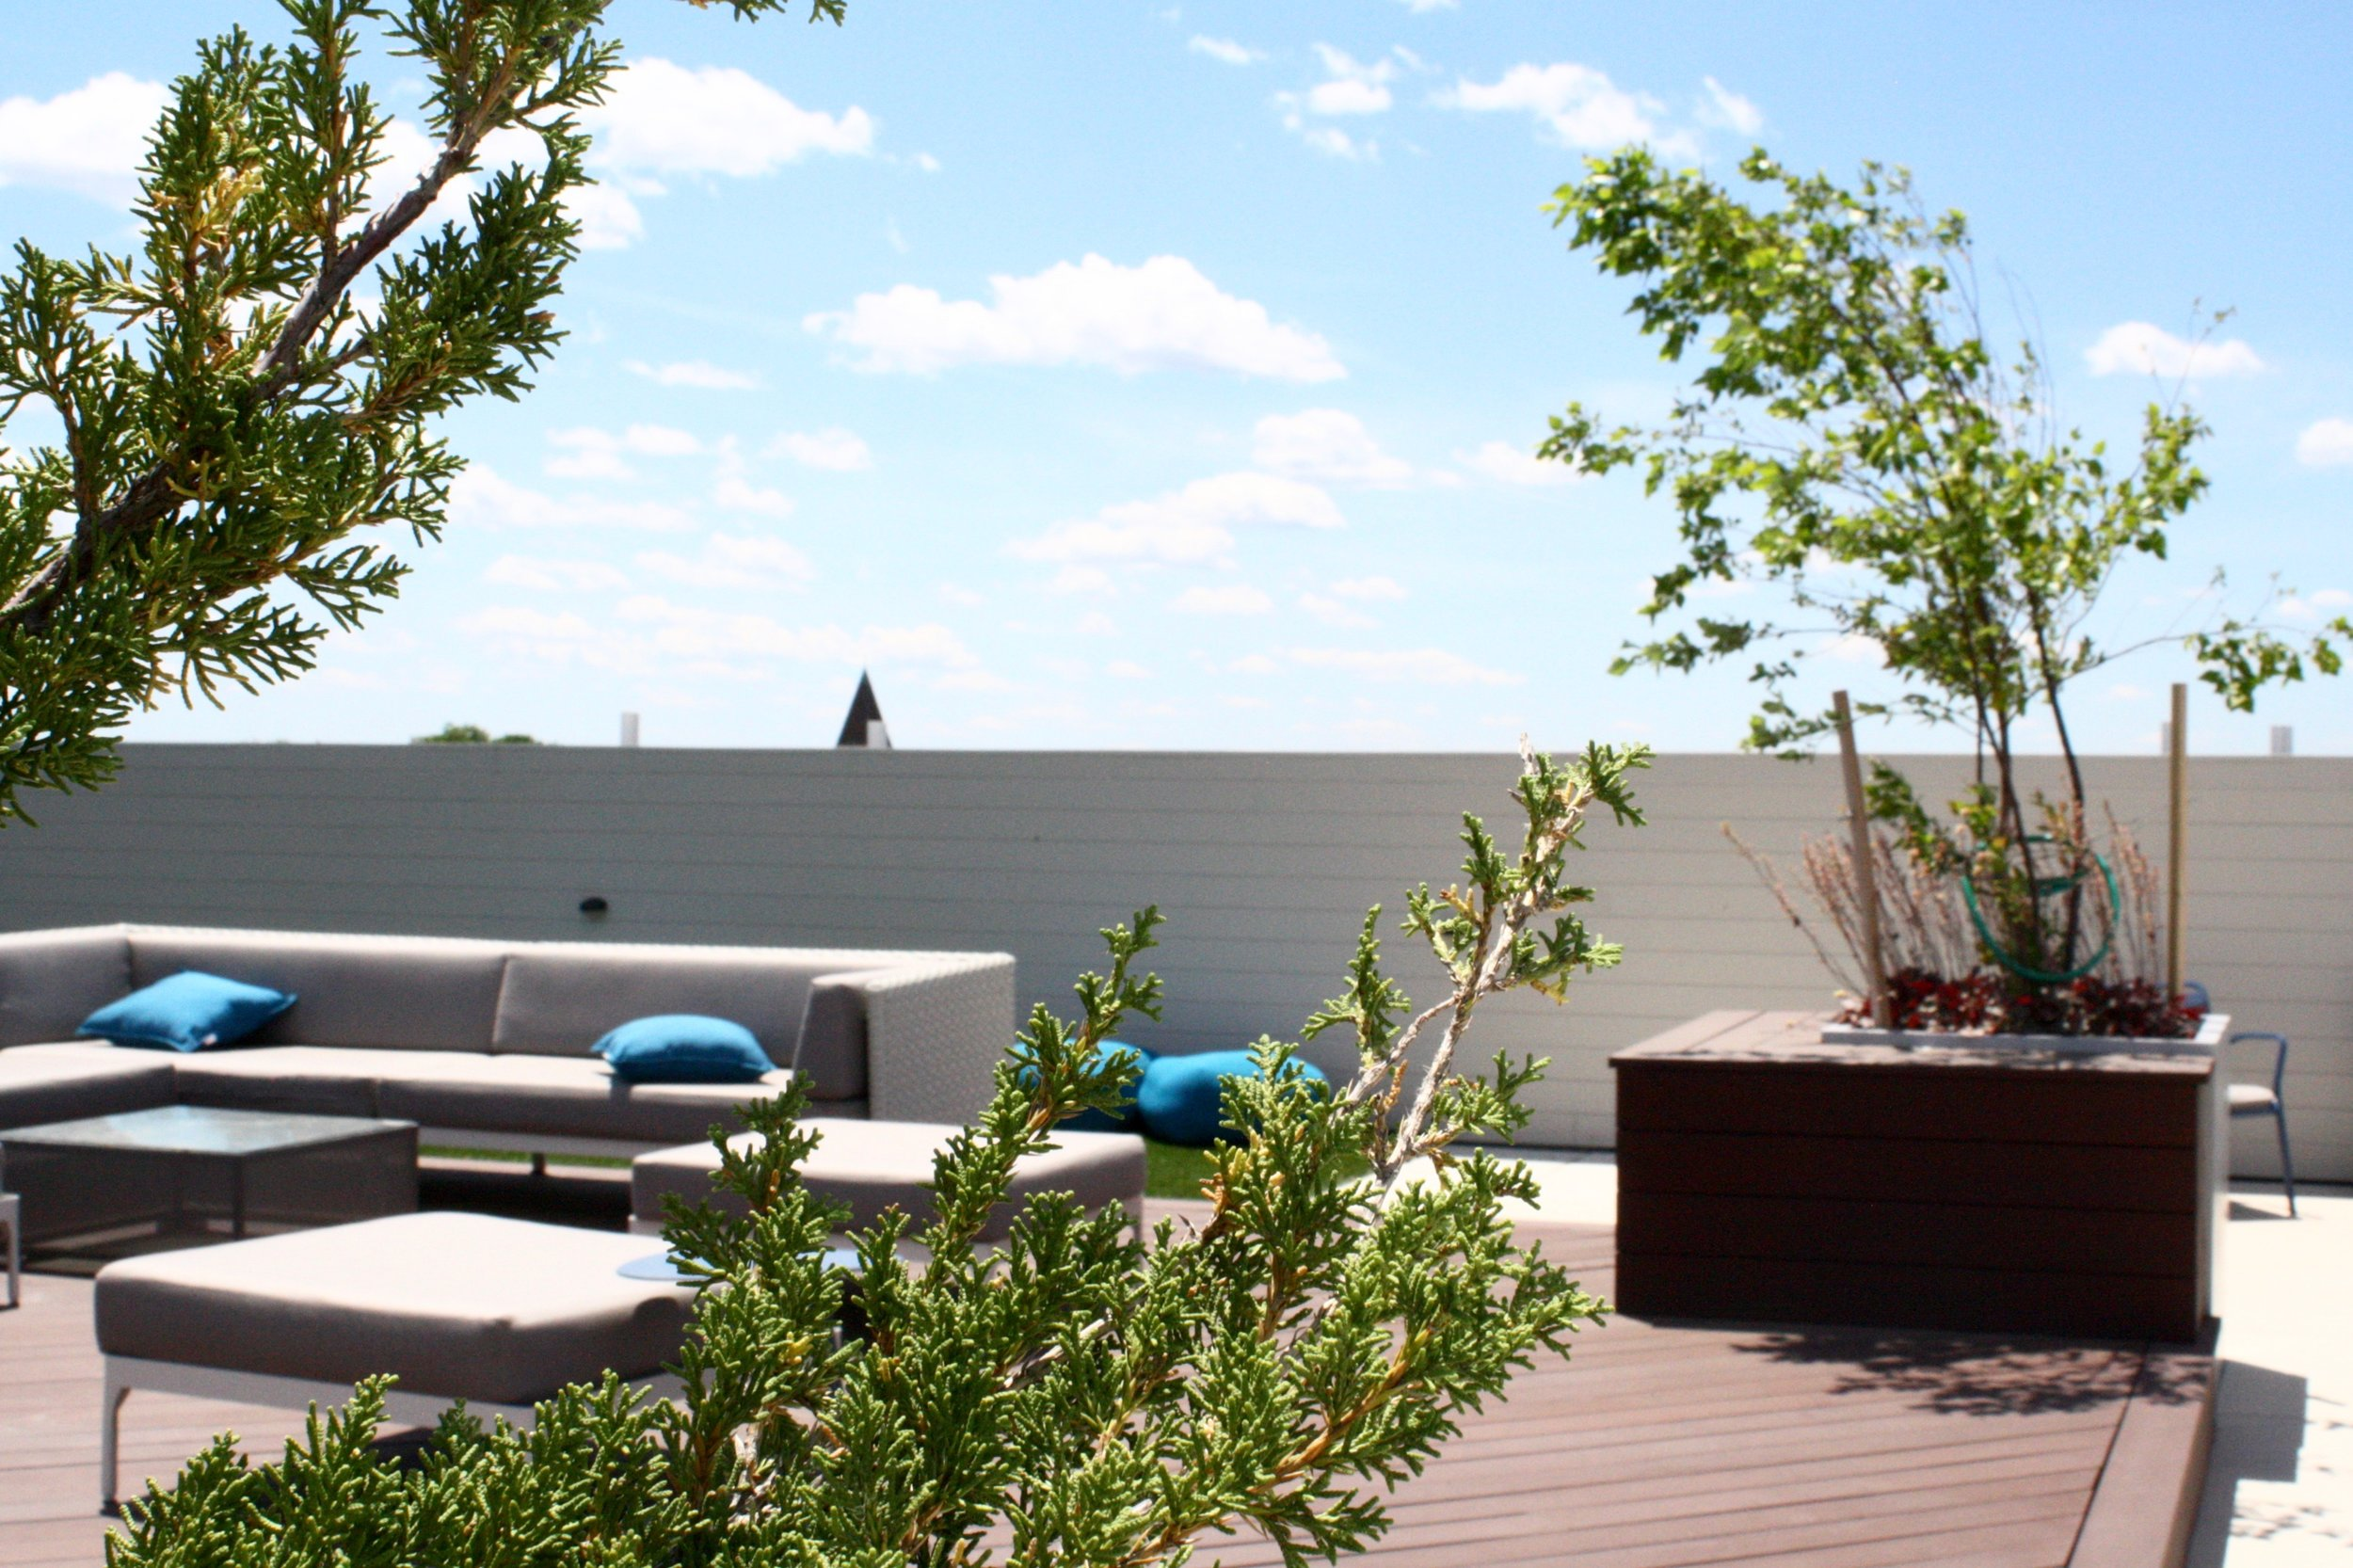 recover-green-roofs-rooftop-patio-east-boston-2015-29.jpg